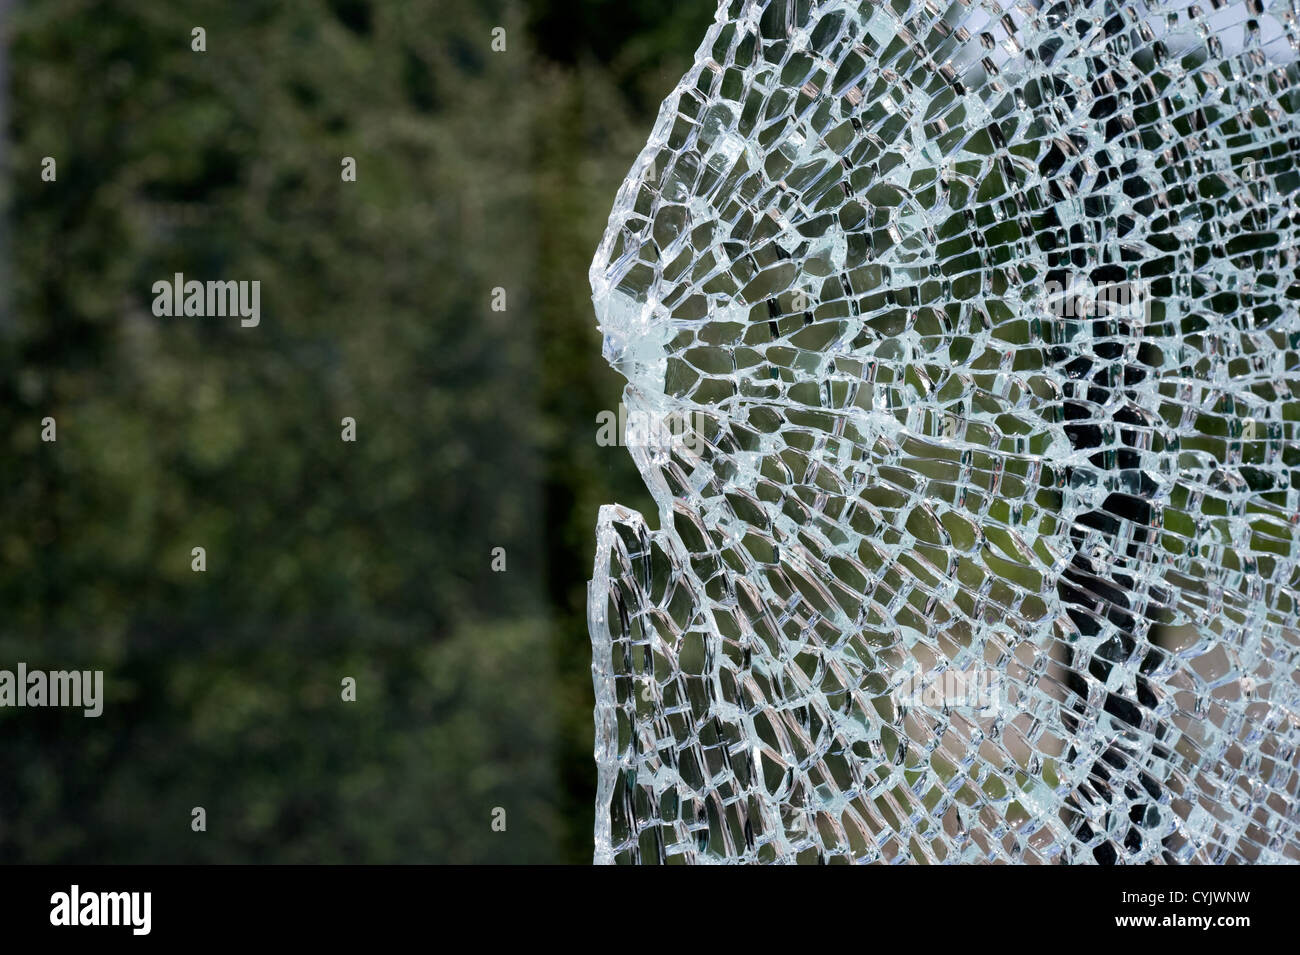 A broken window at a busstop caused bij vandalism - Stock Image